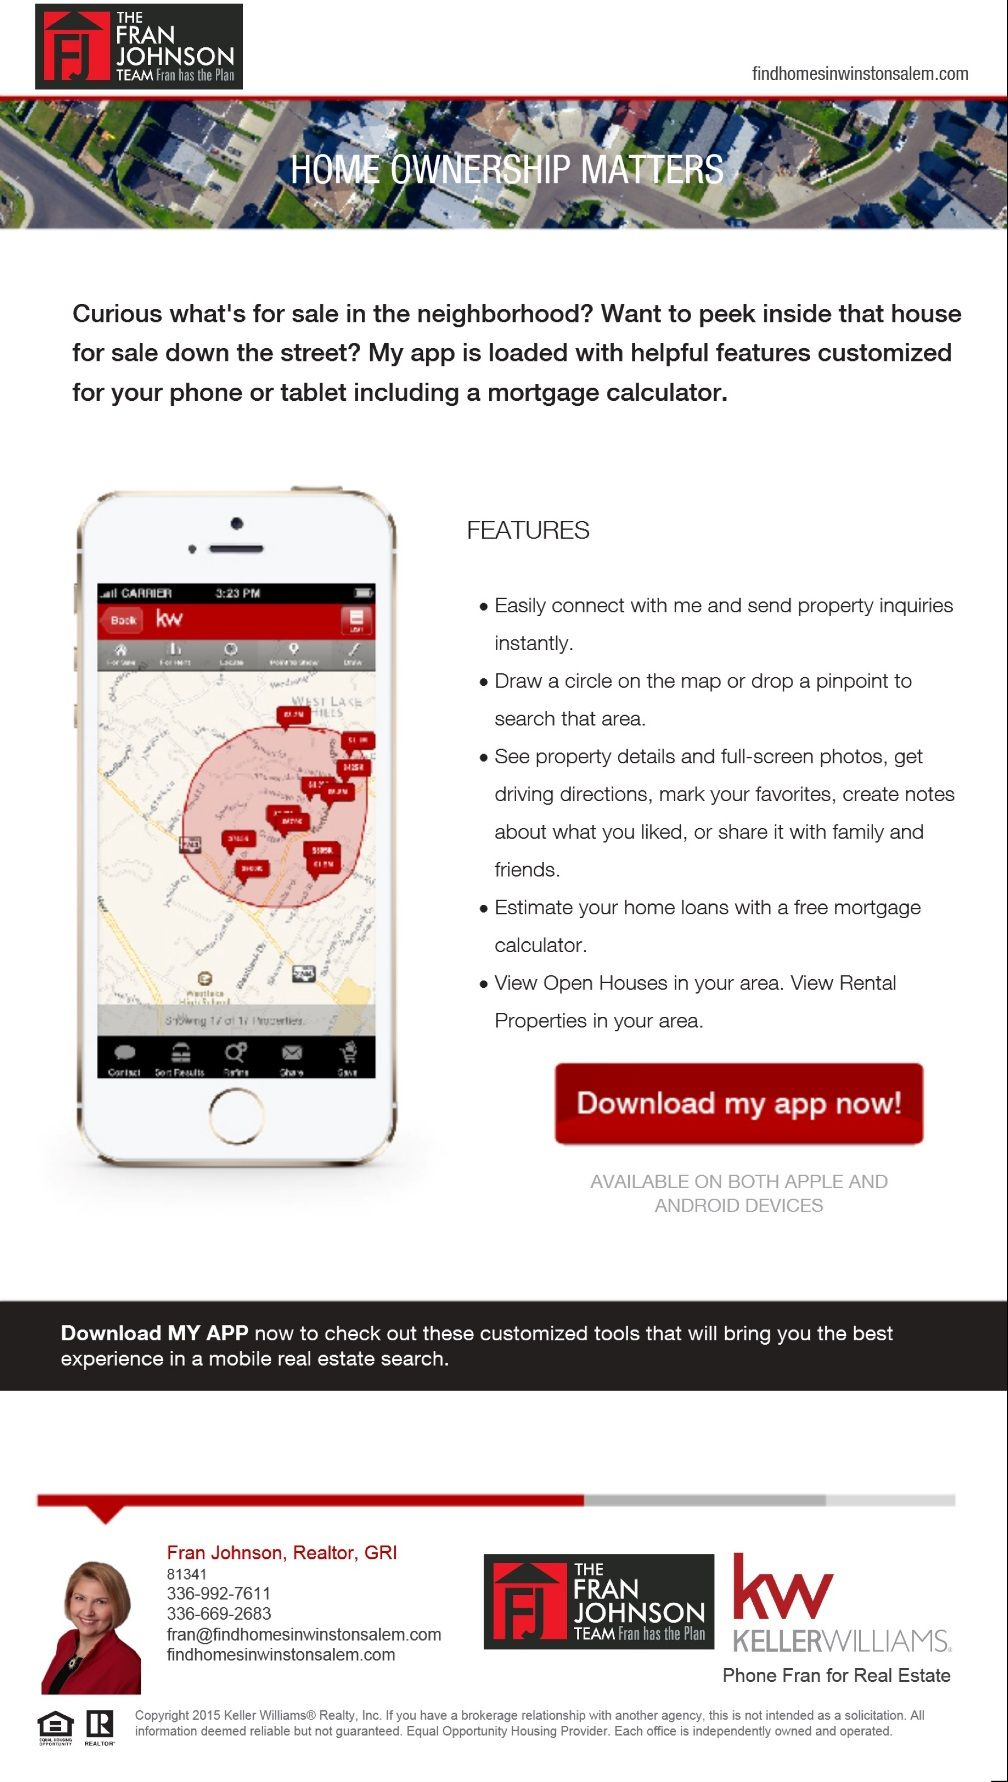 Keller Williams Realty Log into the Vision